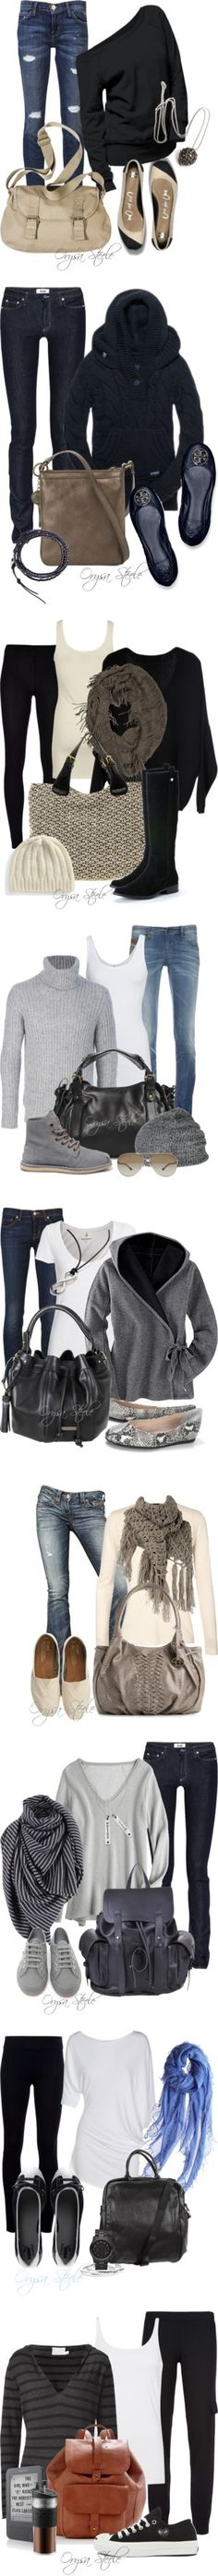 #Love these outfits  #clothing #new #fashion #nice  www.2dayslook.com